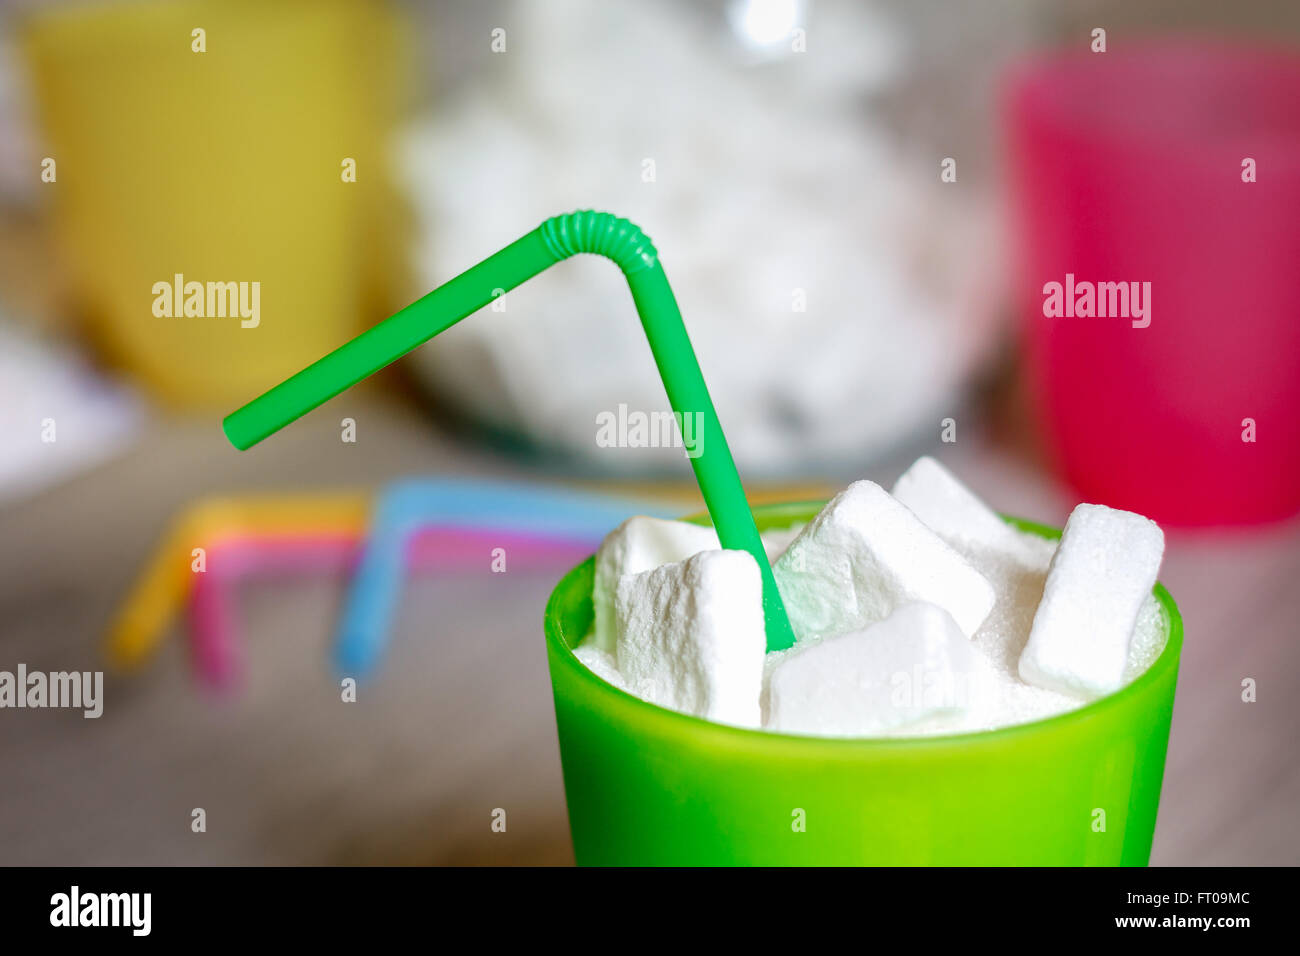 Closeup of green plastic glass with straw full of sugar and sugar cubes. Concept image for too much sugar in sodas - Stock Image